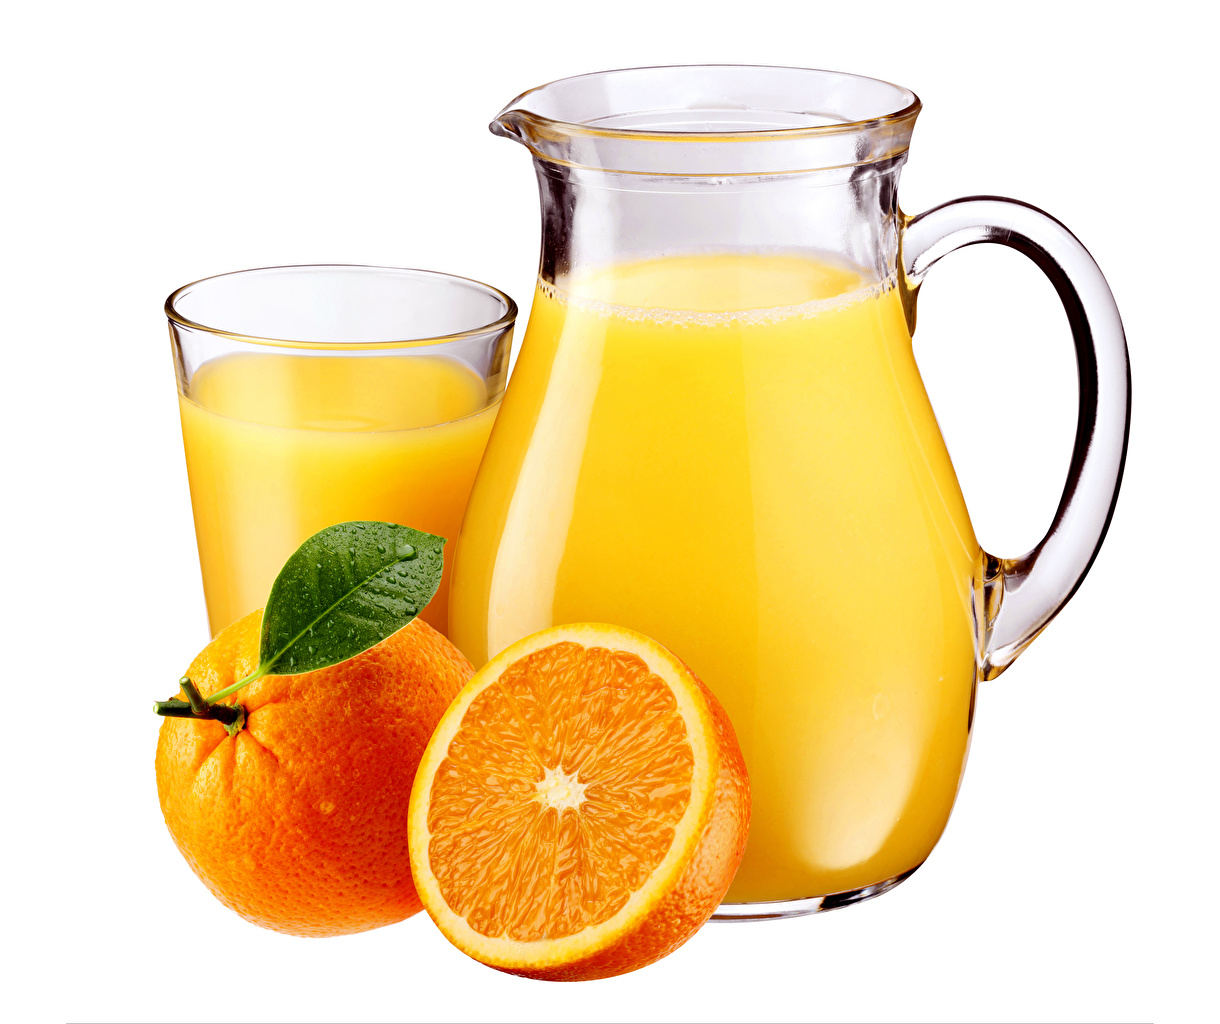 Photos Juice Orange fruit Pitcher Highball glass Food White background Jug container